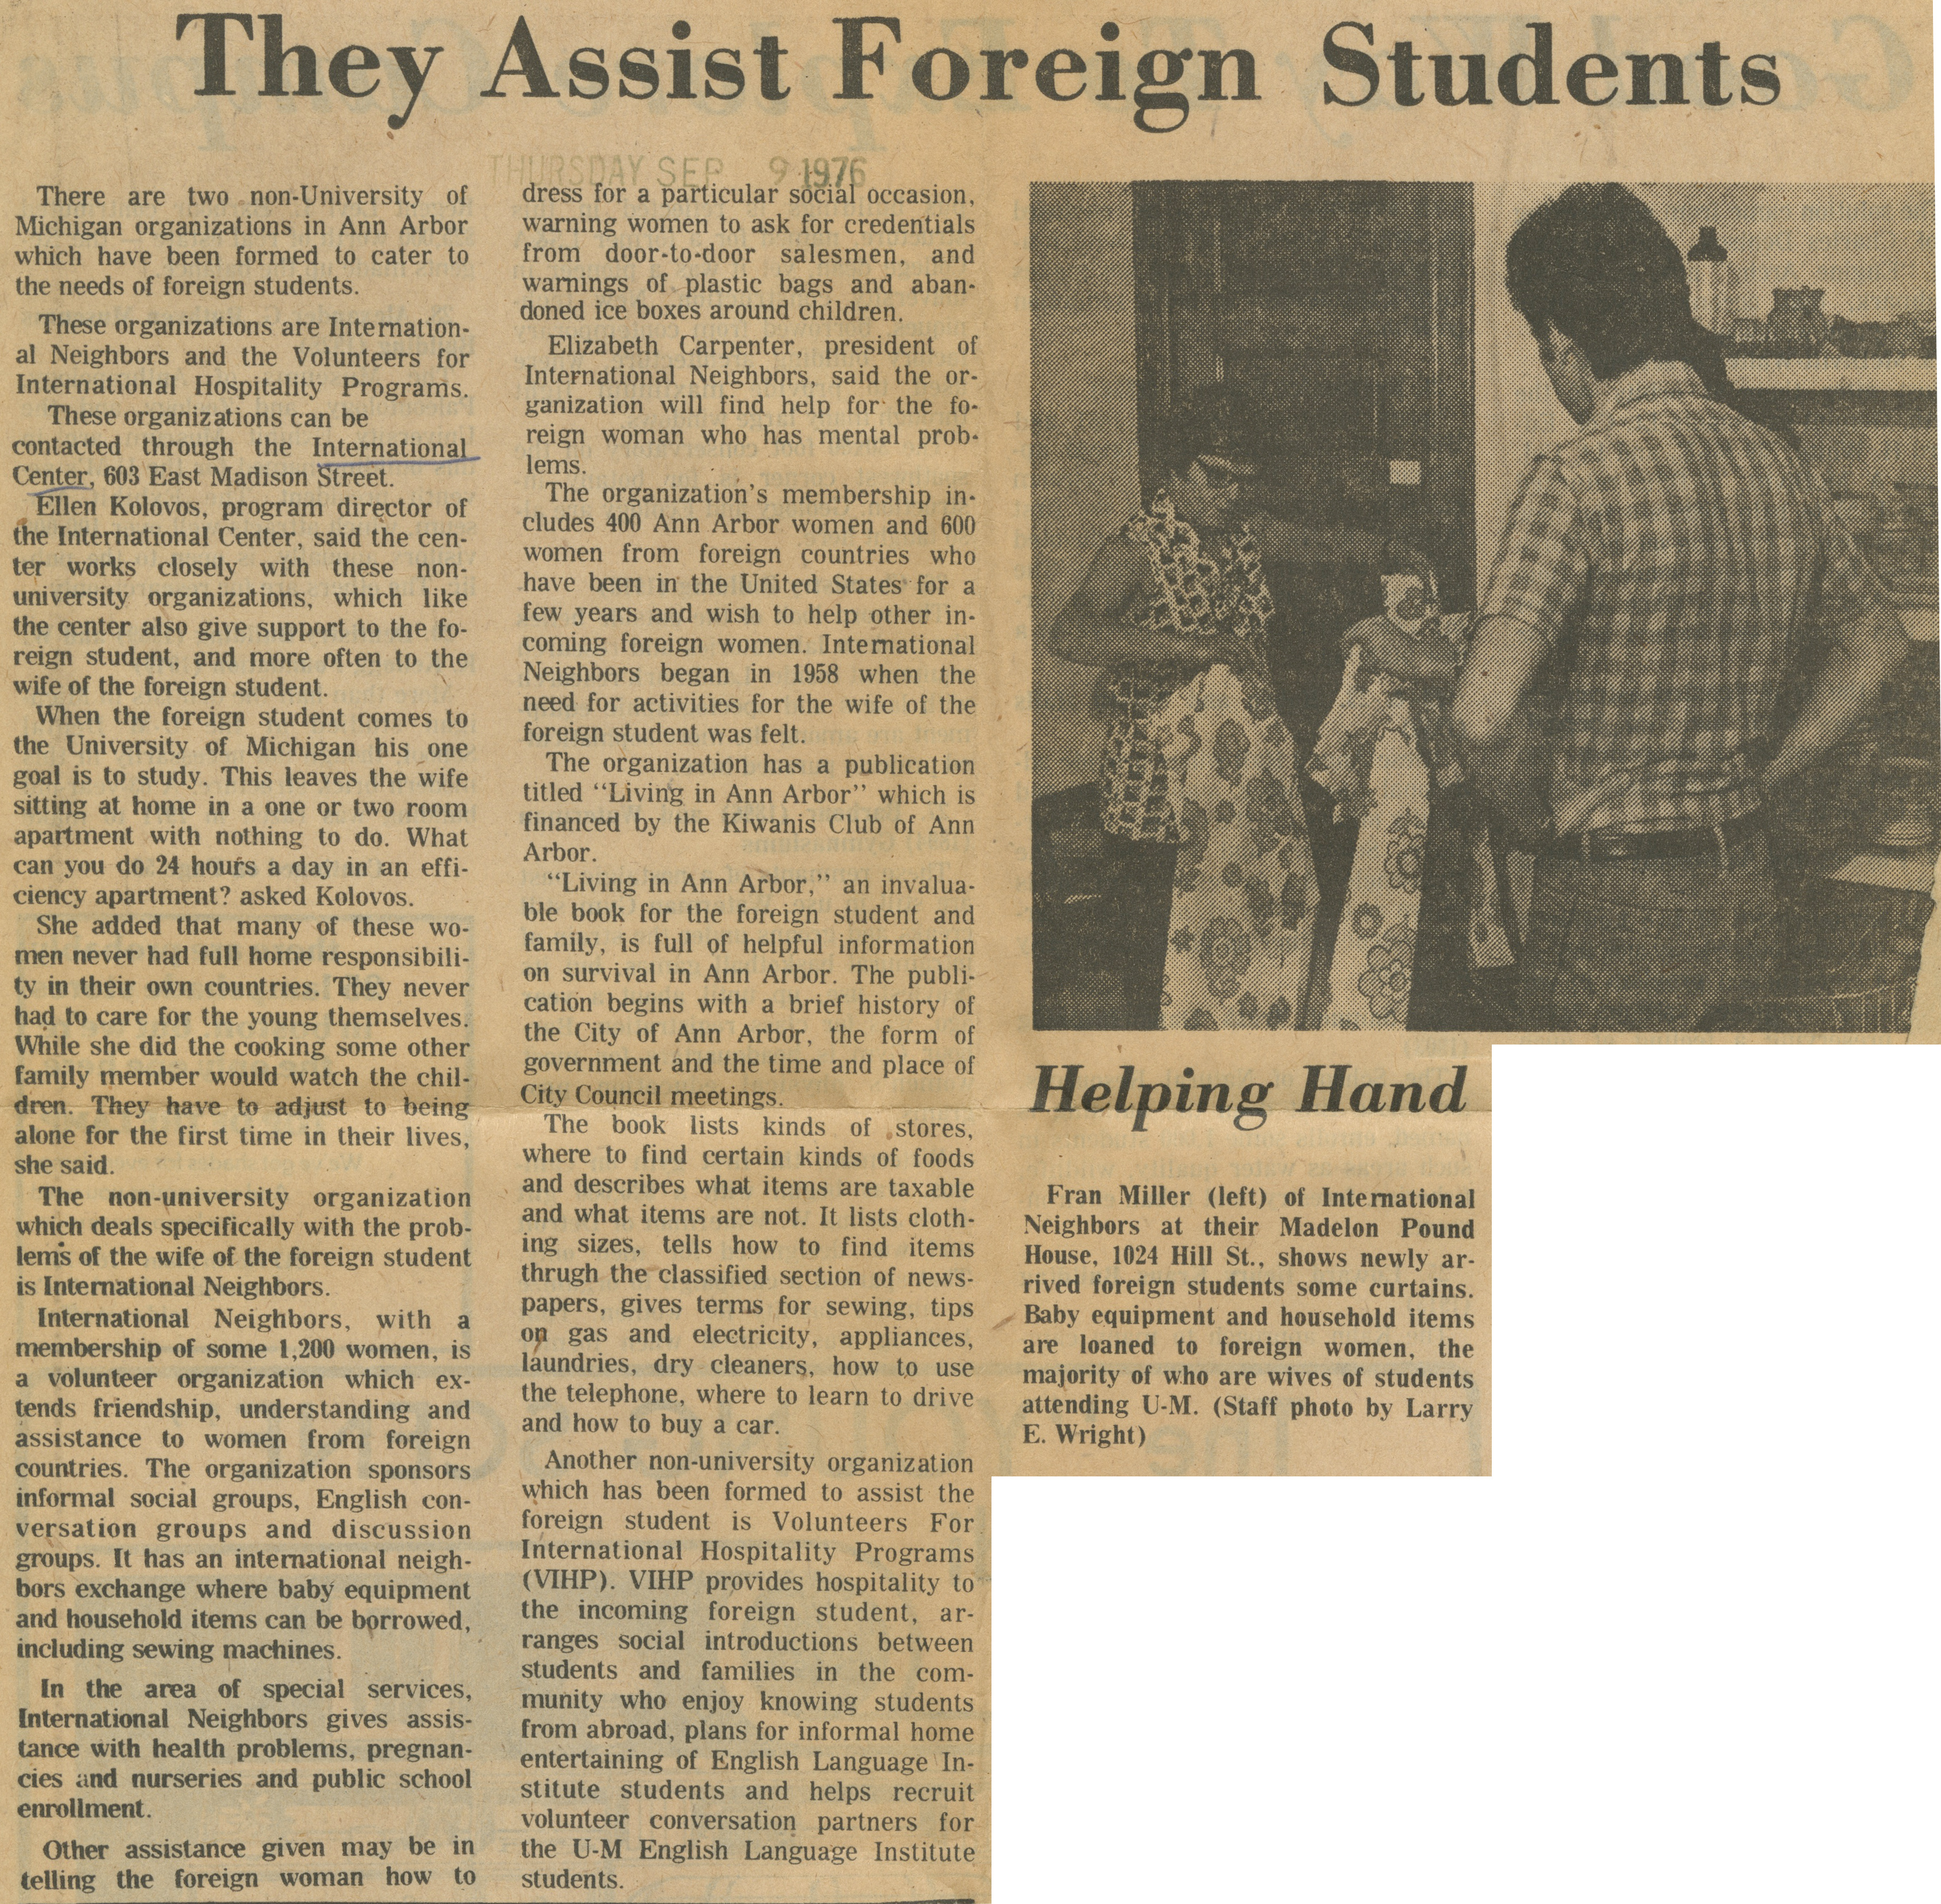 They Assist Foreign Students image